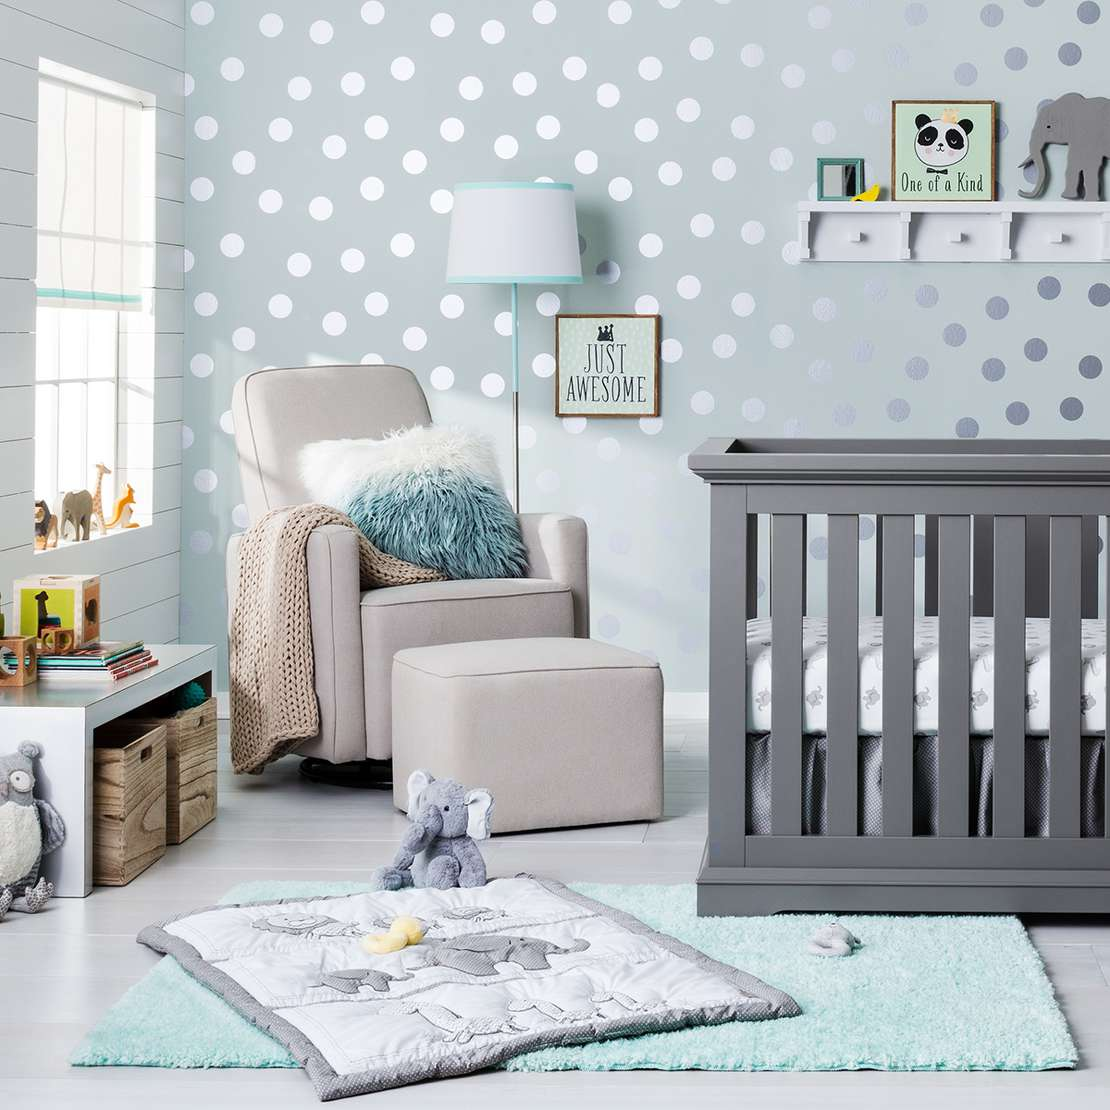 Nursery ideas inspiration target for Room design themes